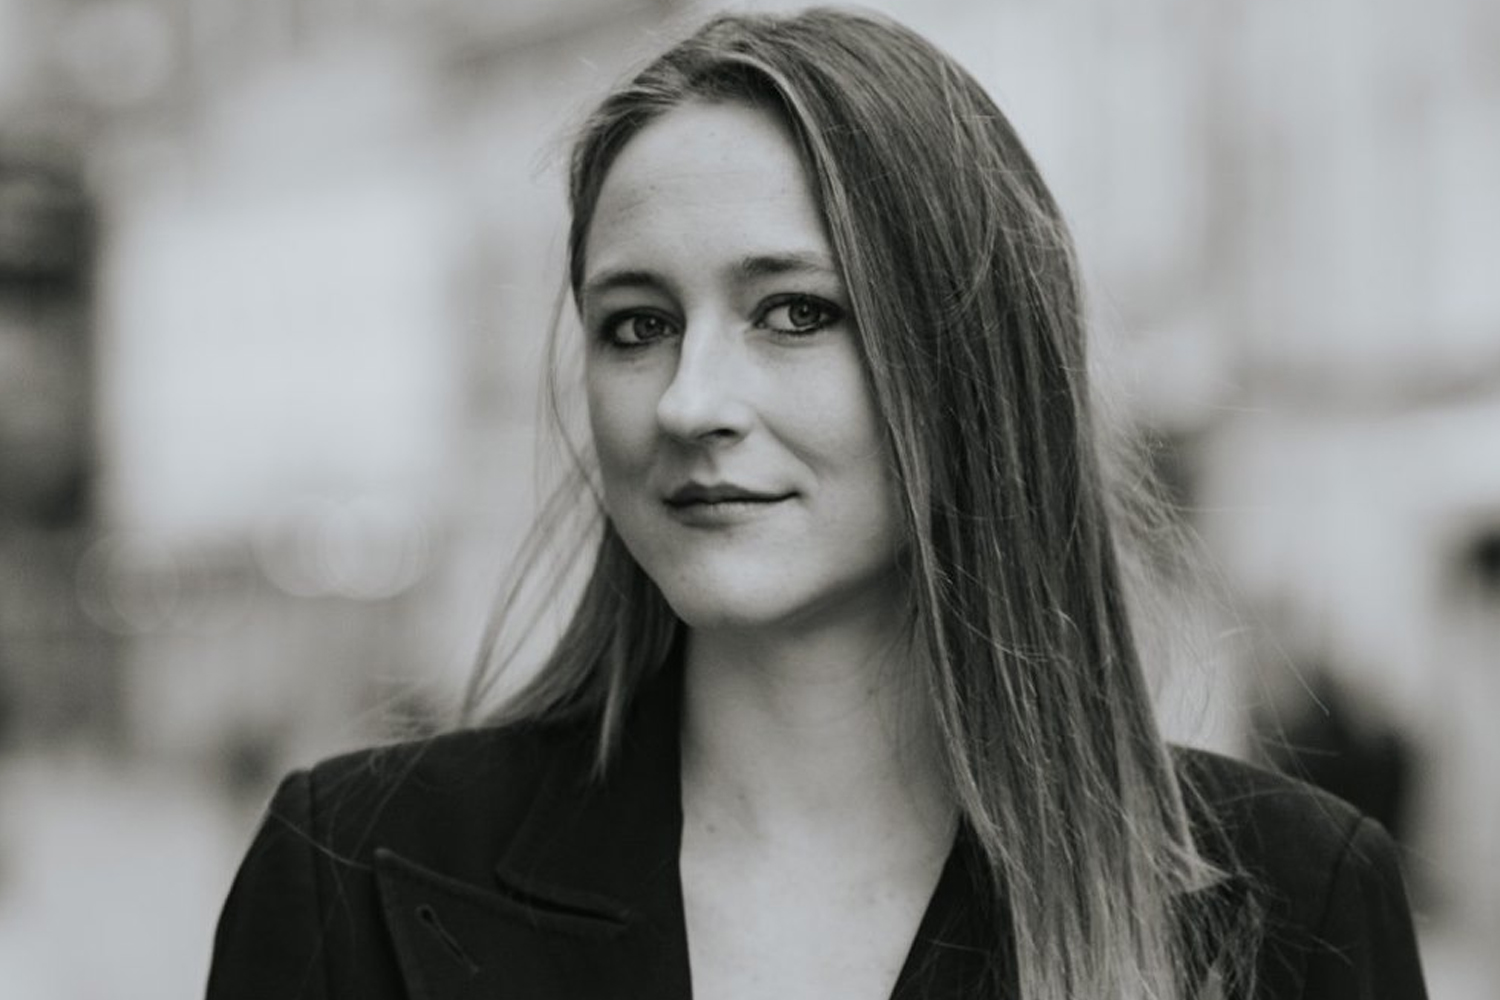 Conductor Hannah Schneider joins Knight Classical for General Management